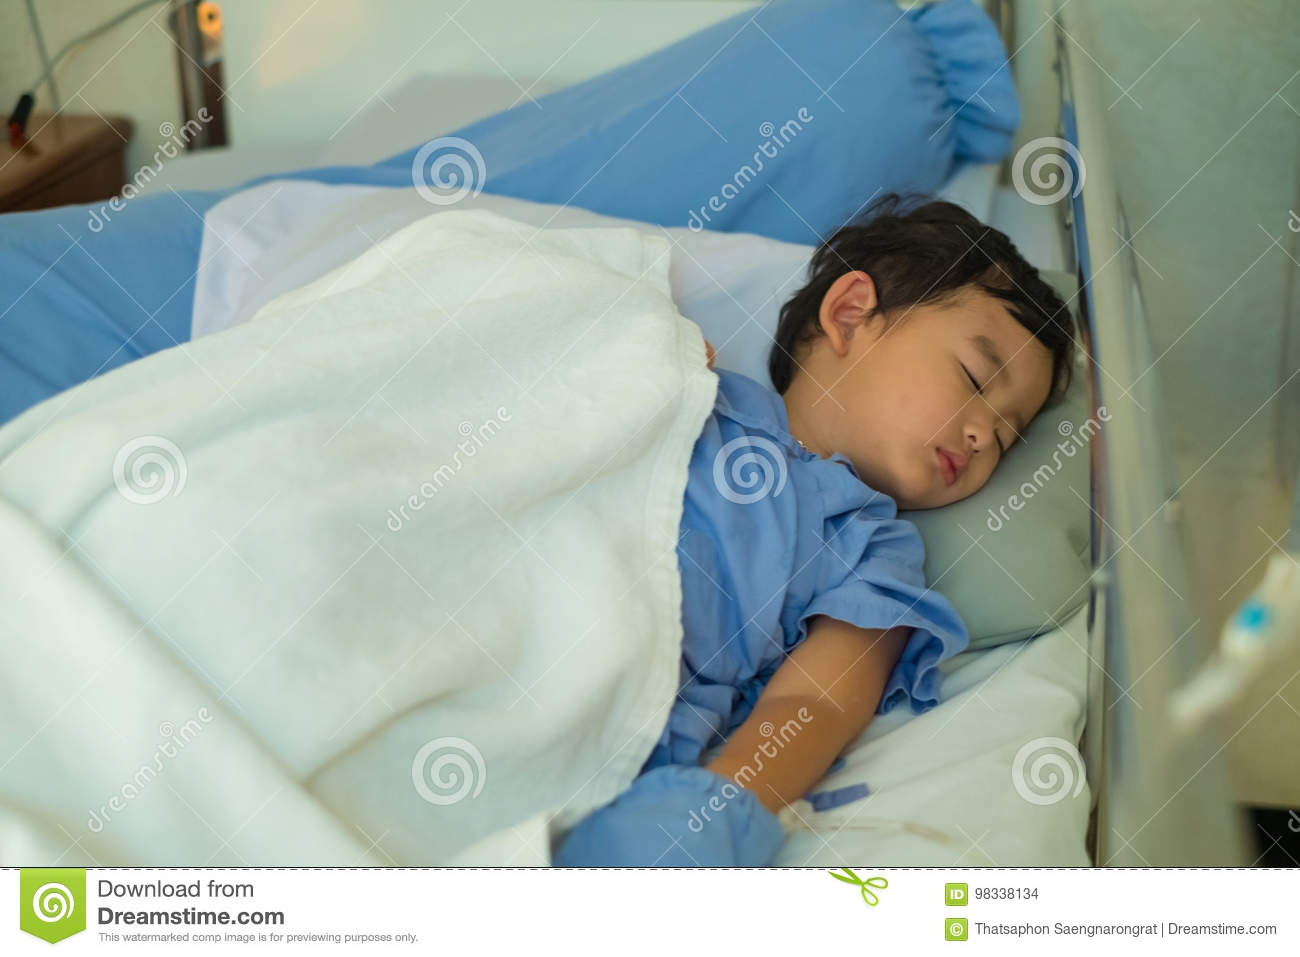 2 Kid Sick Asian Kid Boy 2 Years Old Lying Sick In Hospital Bed Stock